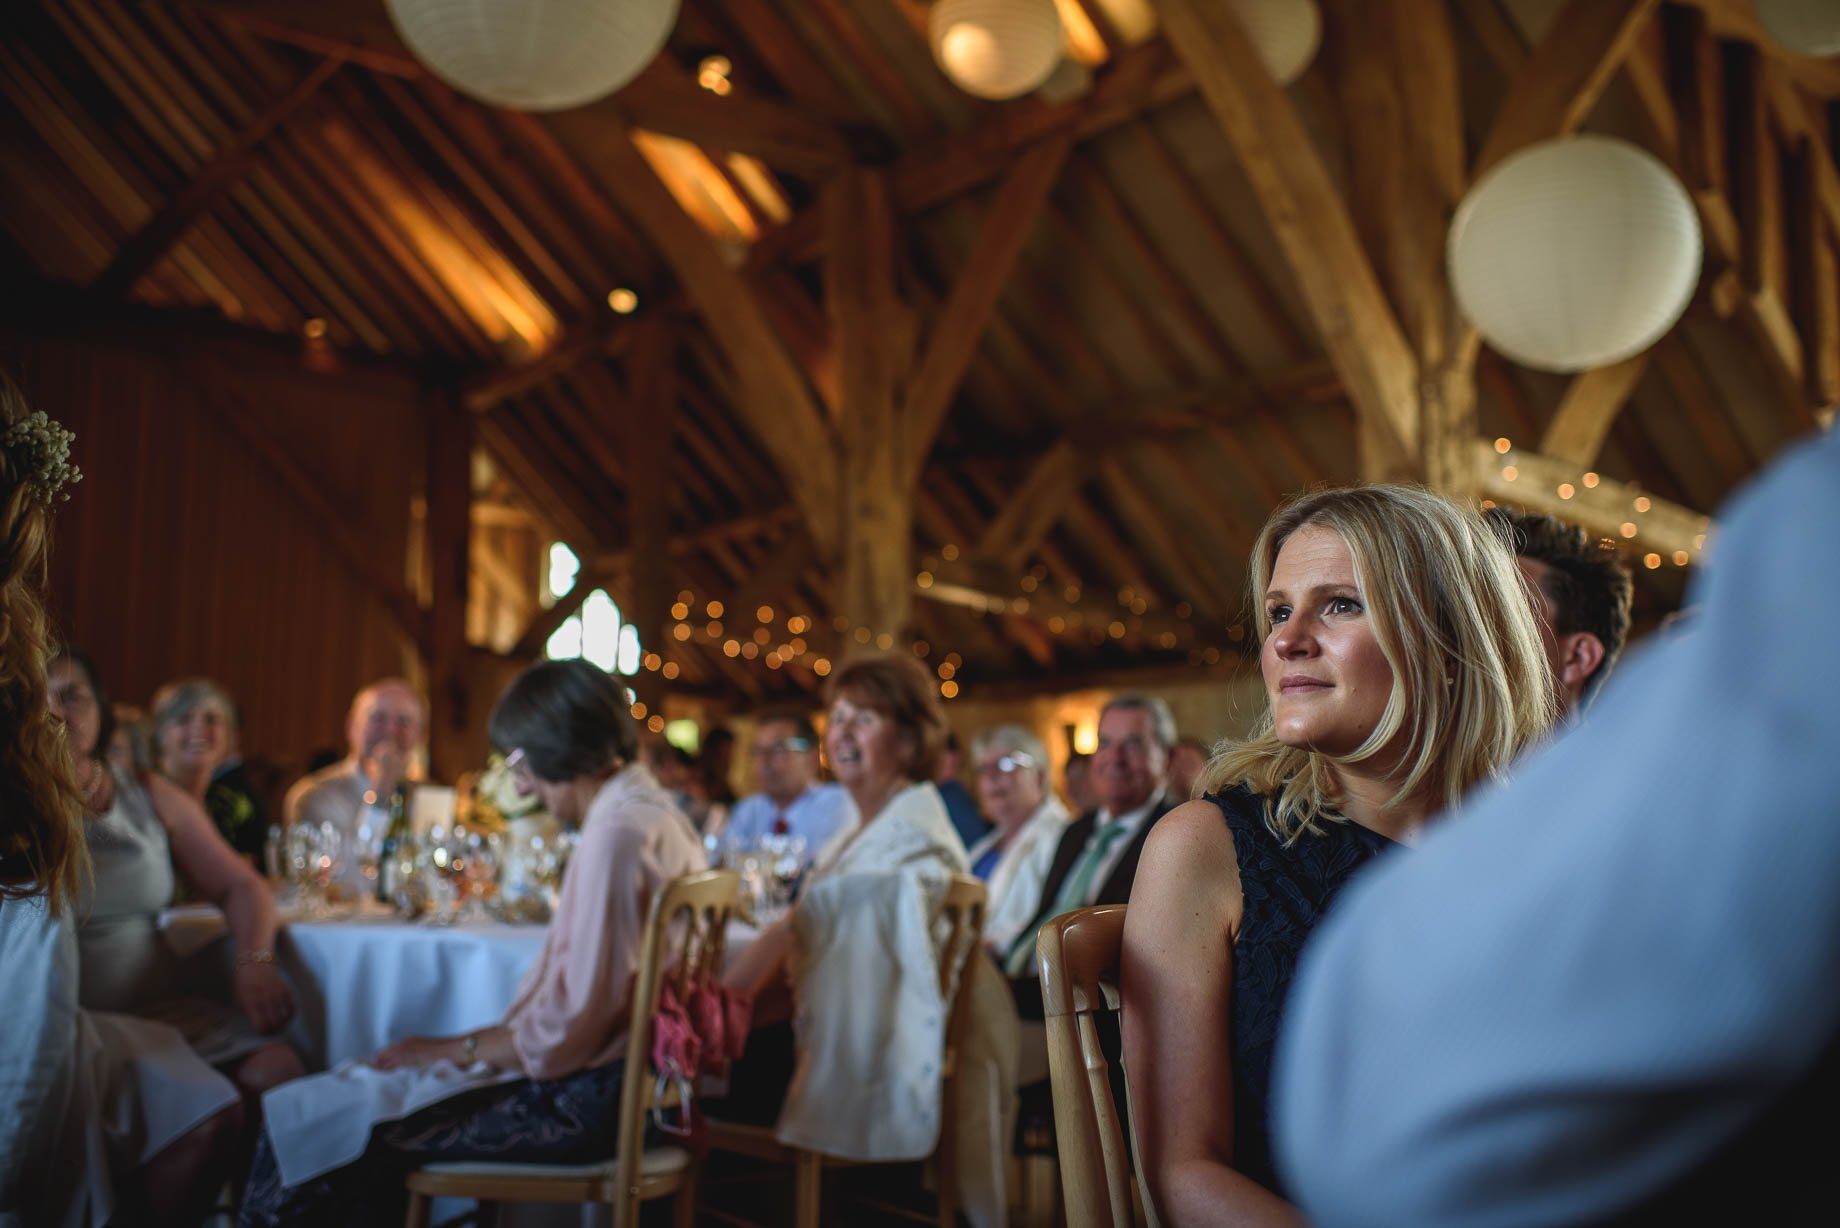 Bury Court Barn wedding photography by Guy Collier - Heather and Pat (121 of 170)